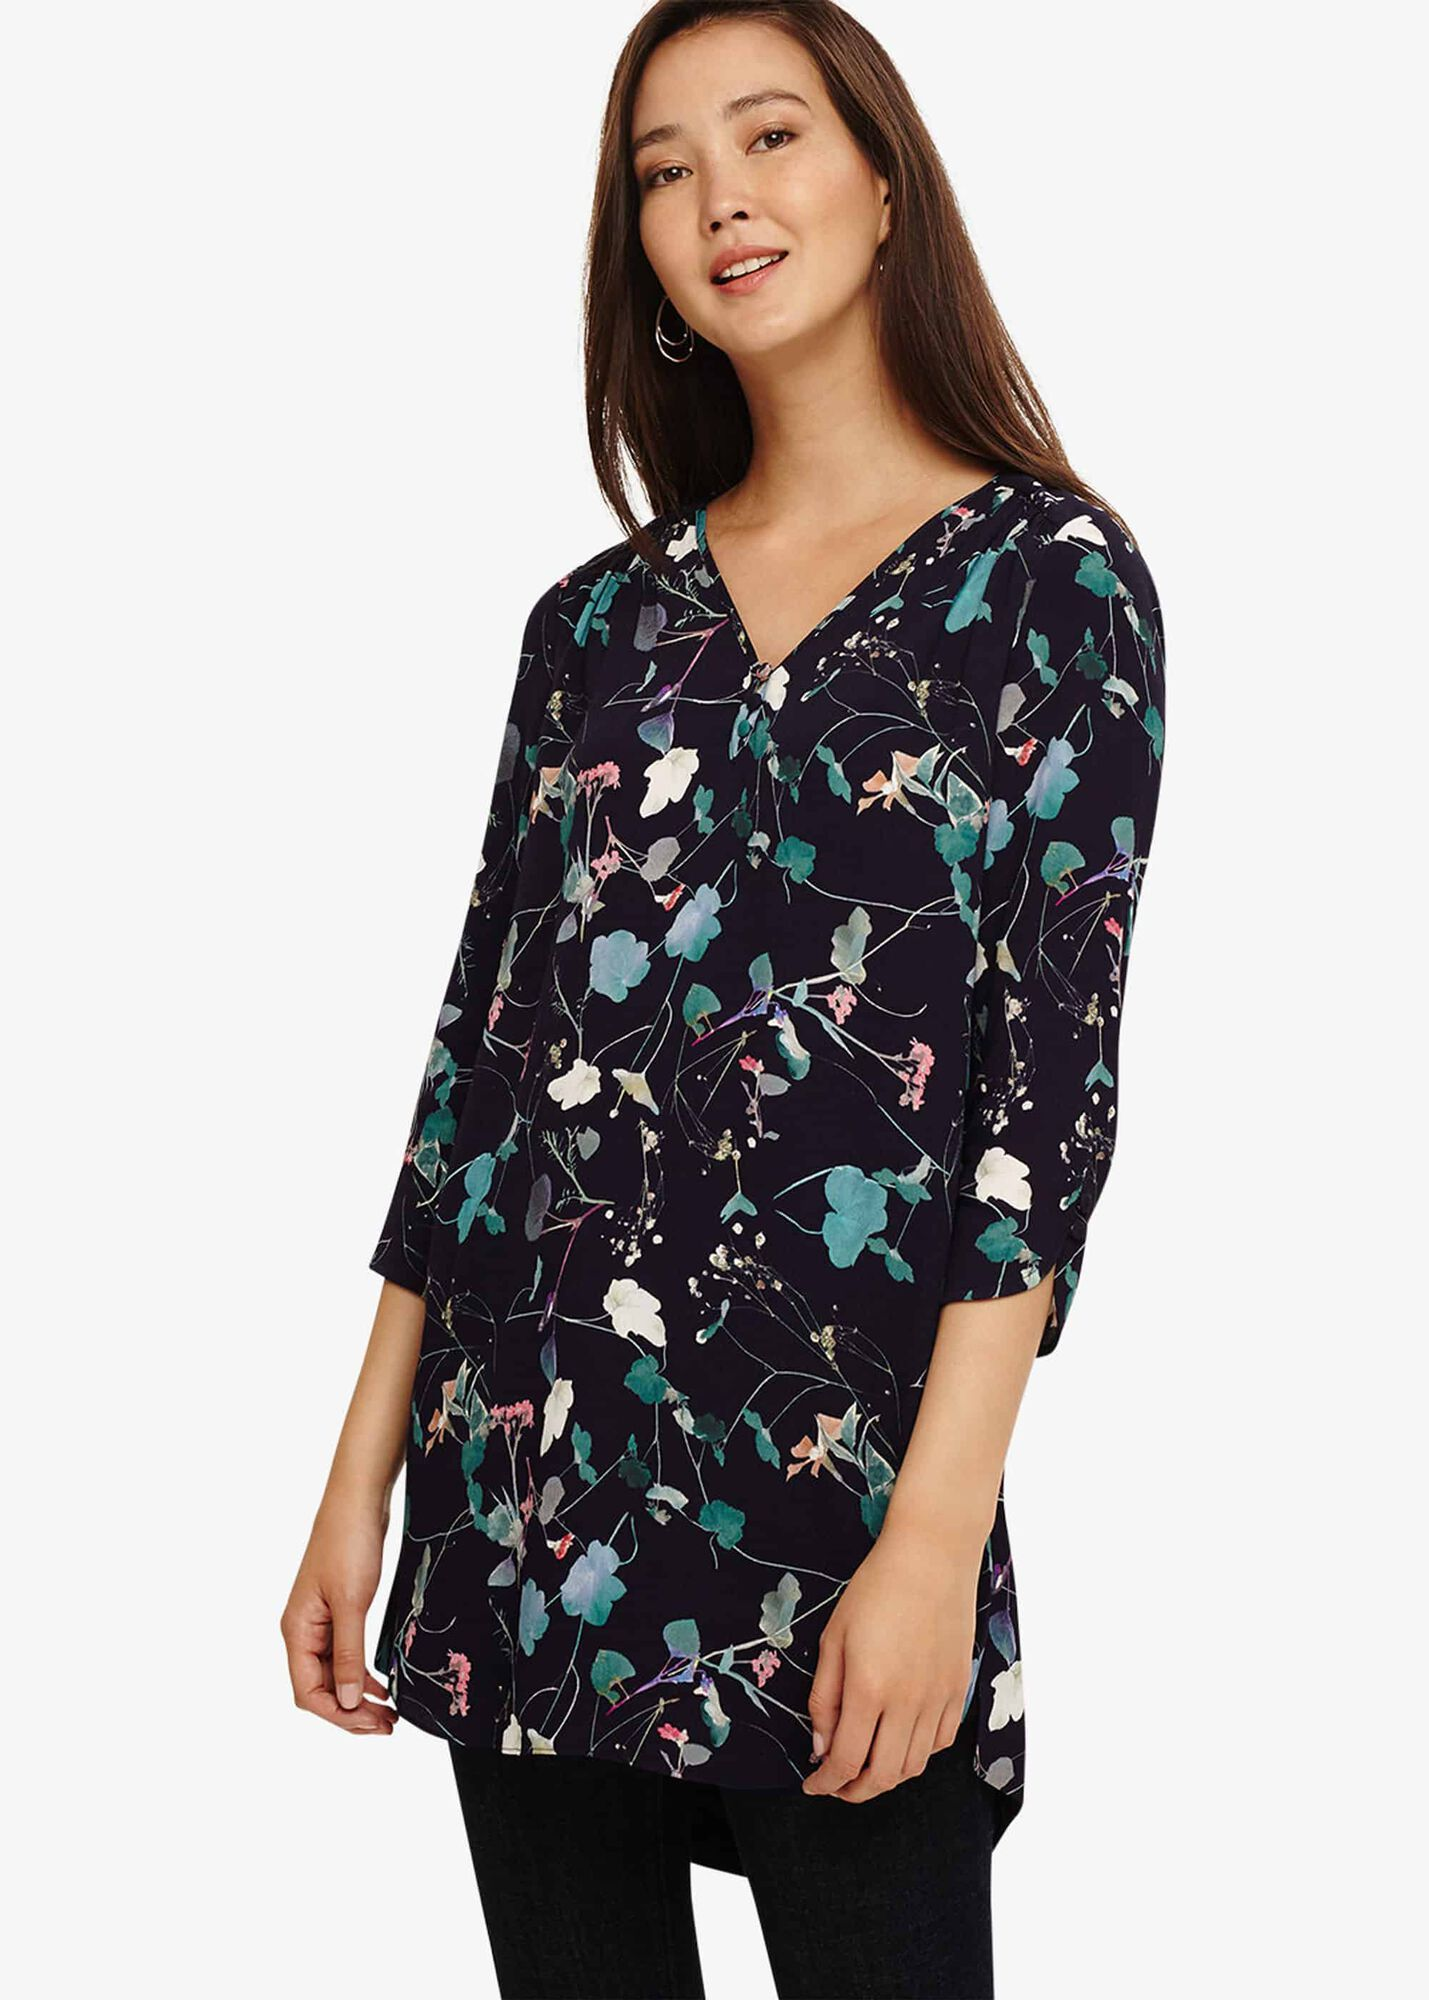 7847225ed34 Pearly Floral Tunic Top   Phase Eight   Phase Eight